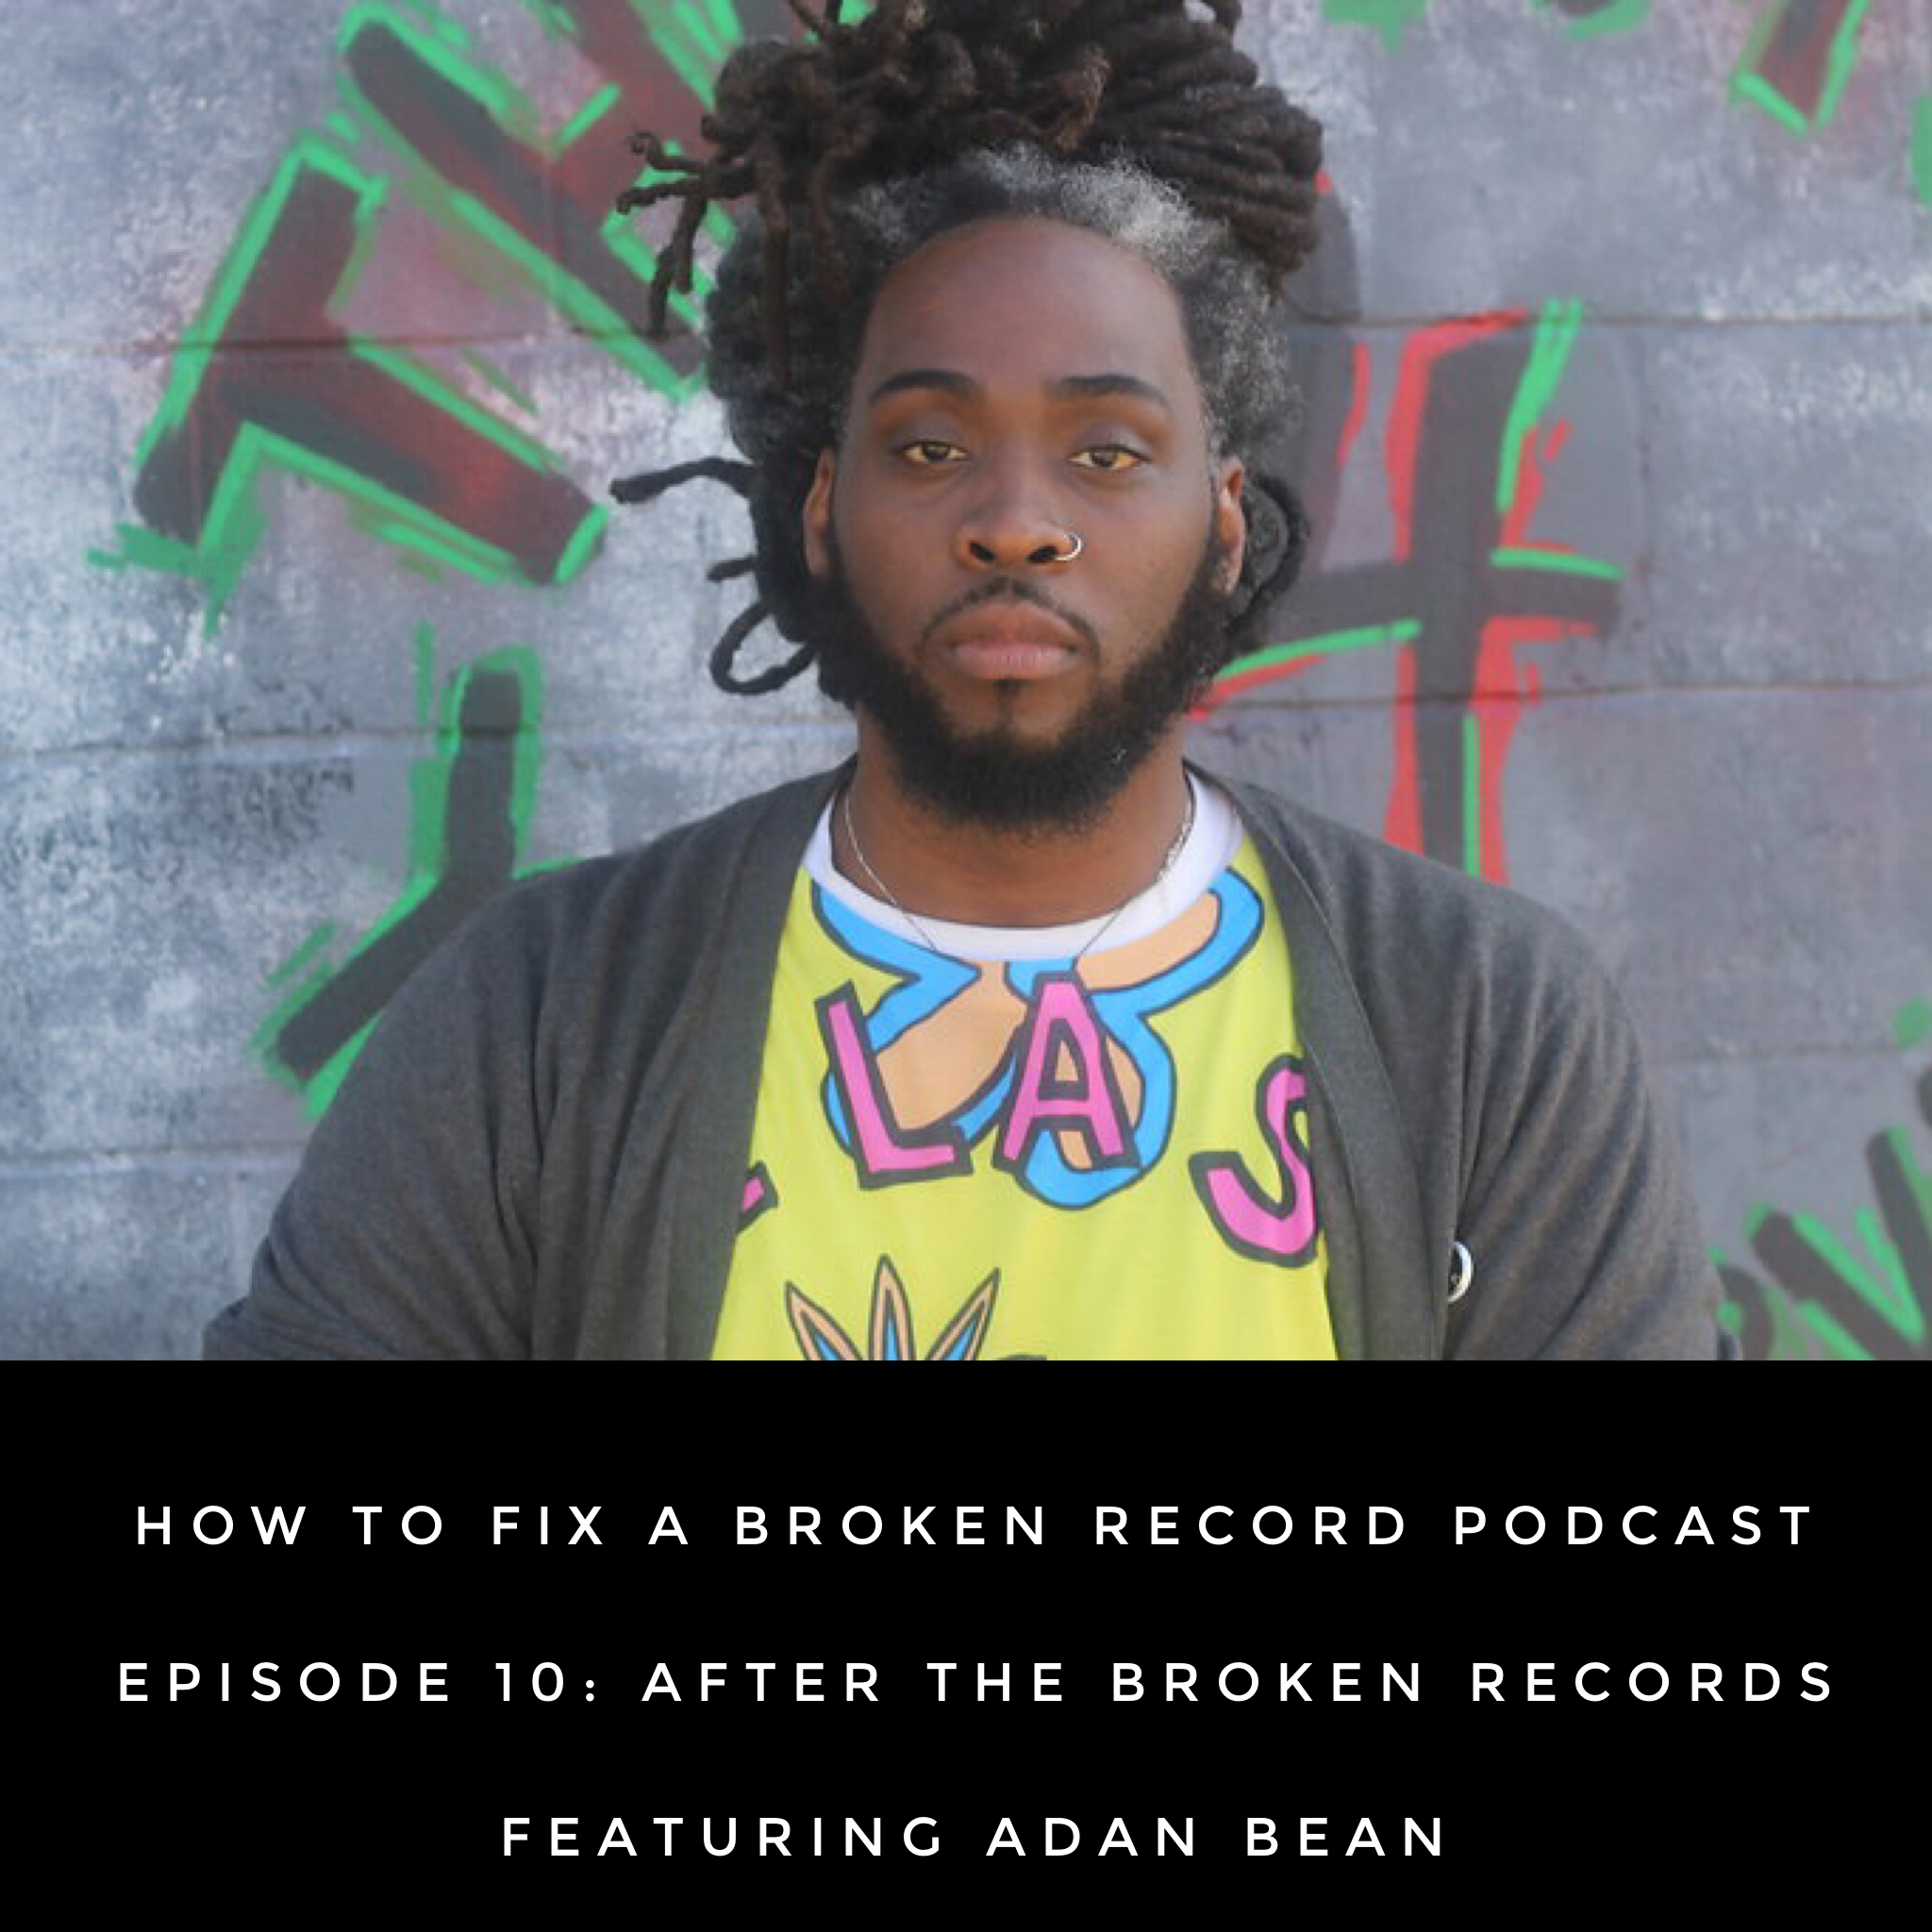 How To Fix A Broken Record Podcast Episode 10: After The Broken Records featuring Adan Bean